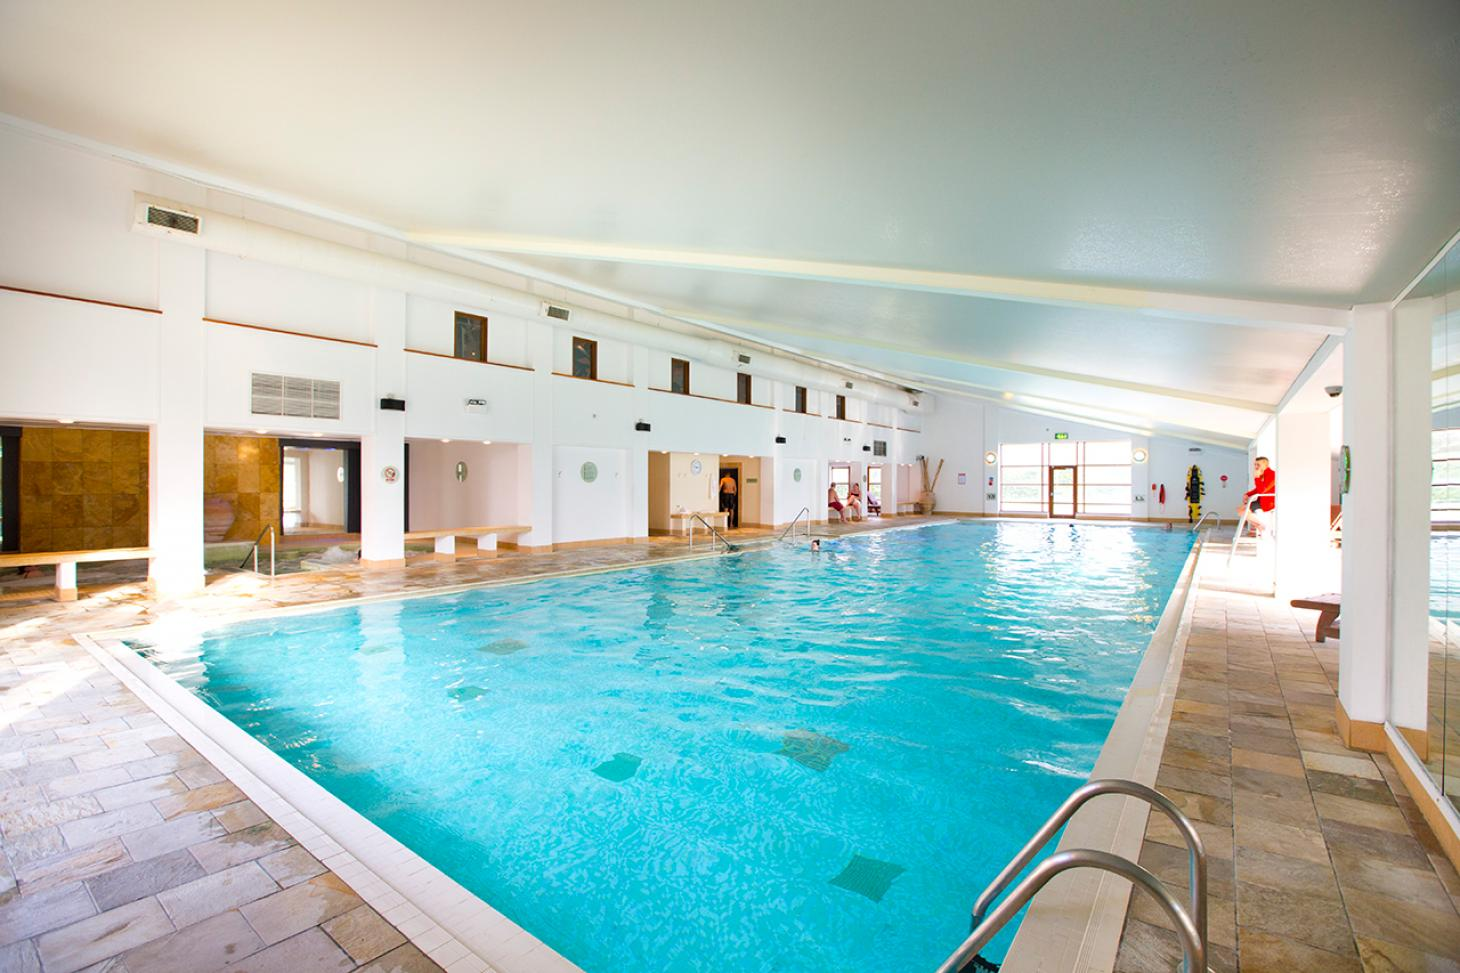 Virgin Active Chislehurst Indoor swimming pool